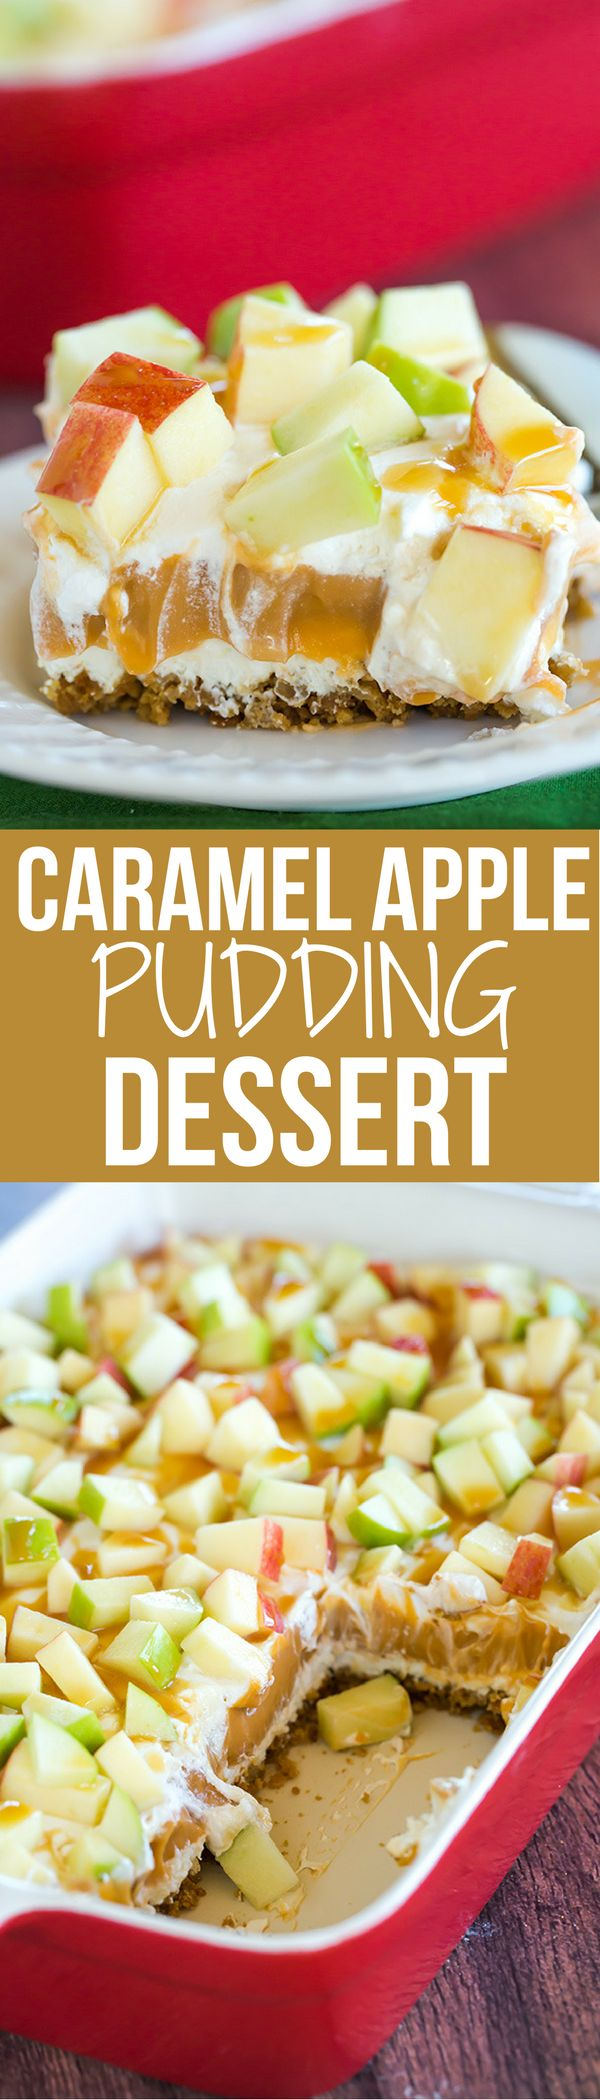 This caramel apple pudding has layers of caramel cheesecake filling, caramel pudding, a whipped cream topping, apples, and peanuts all on top of a gingersnap crust.